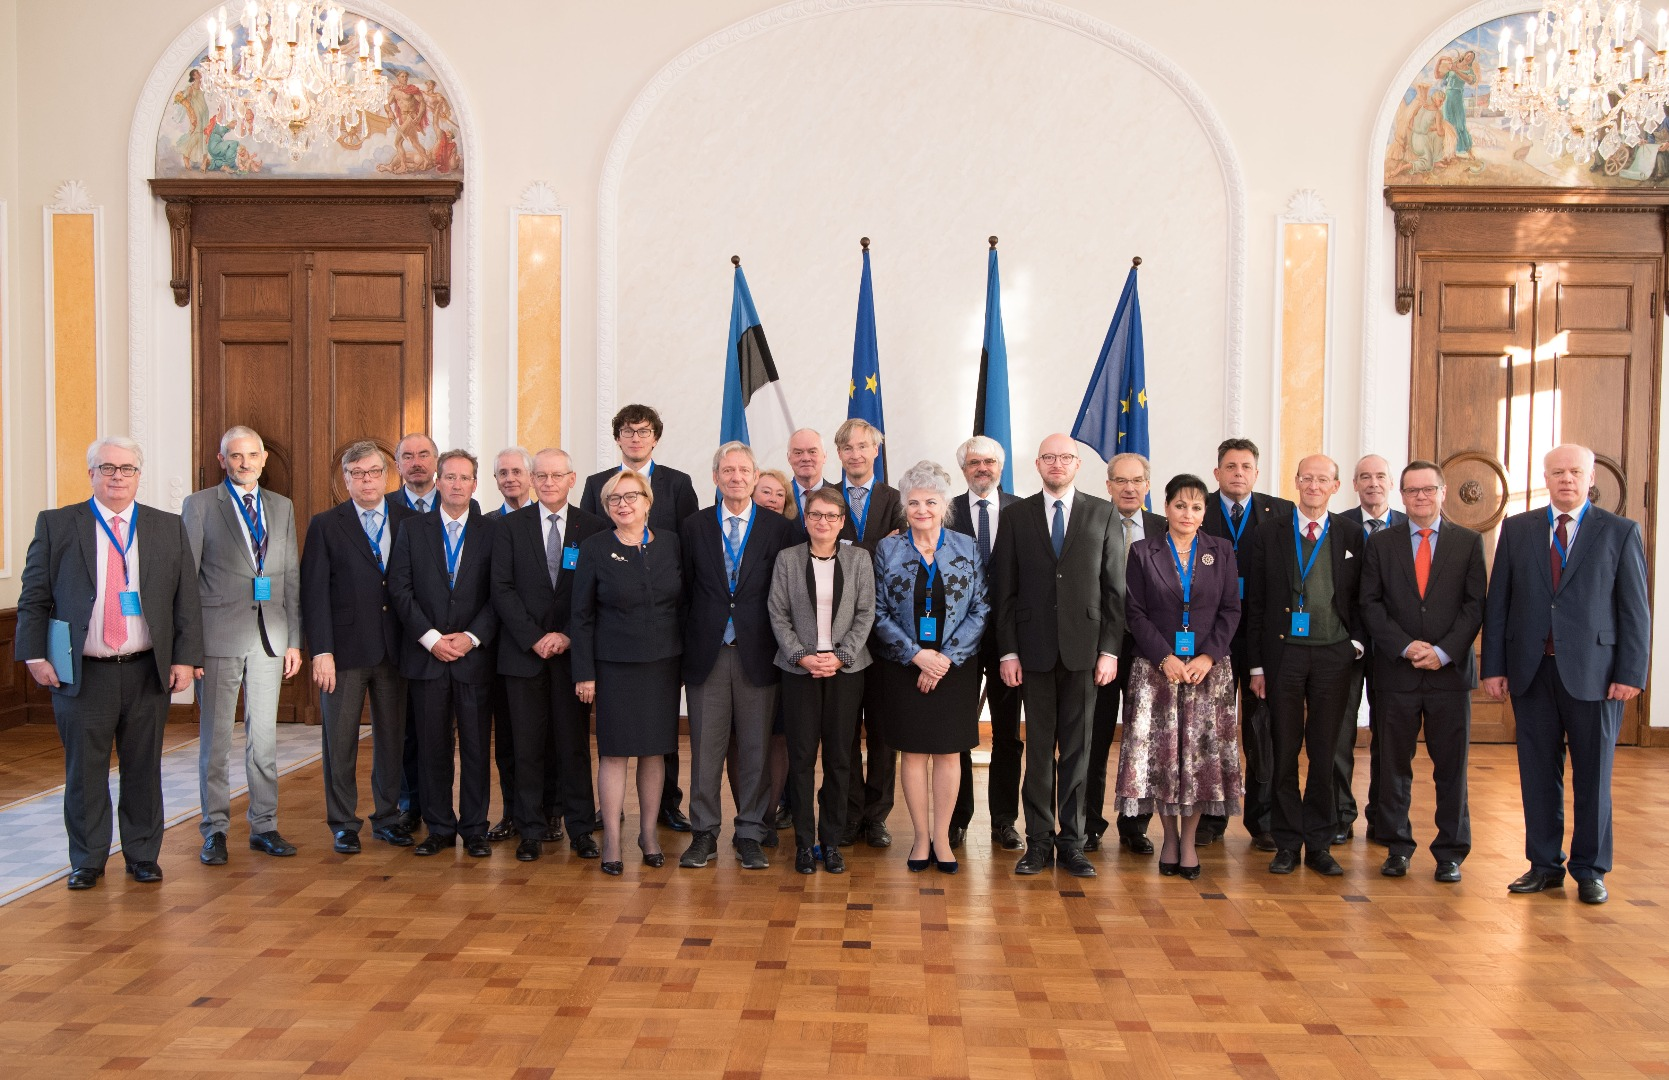 20.10.2017. The Presidents of the Supreme Courts of the member States of the European Union meet in Estonia